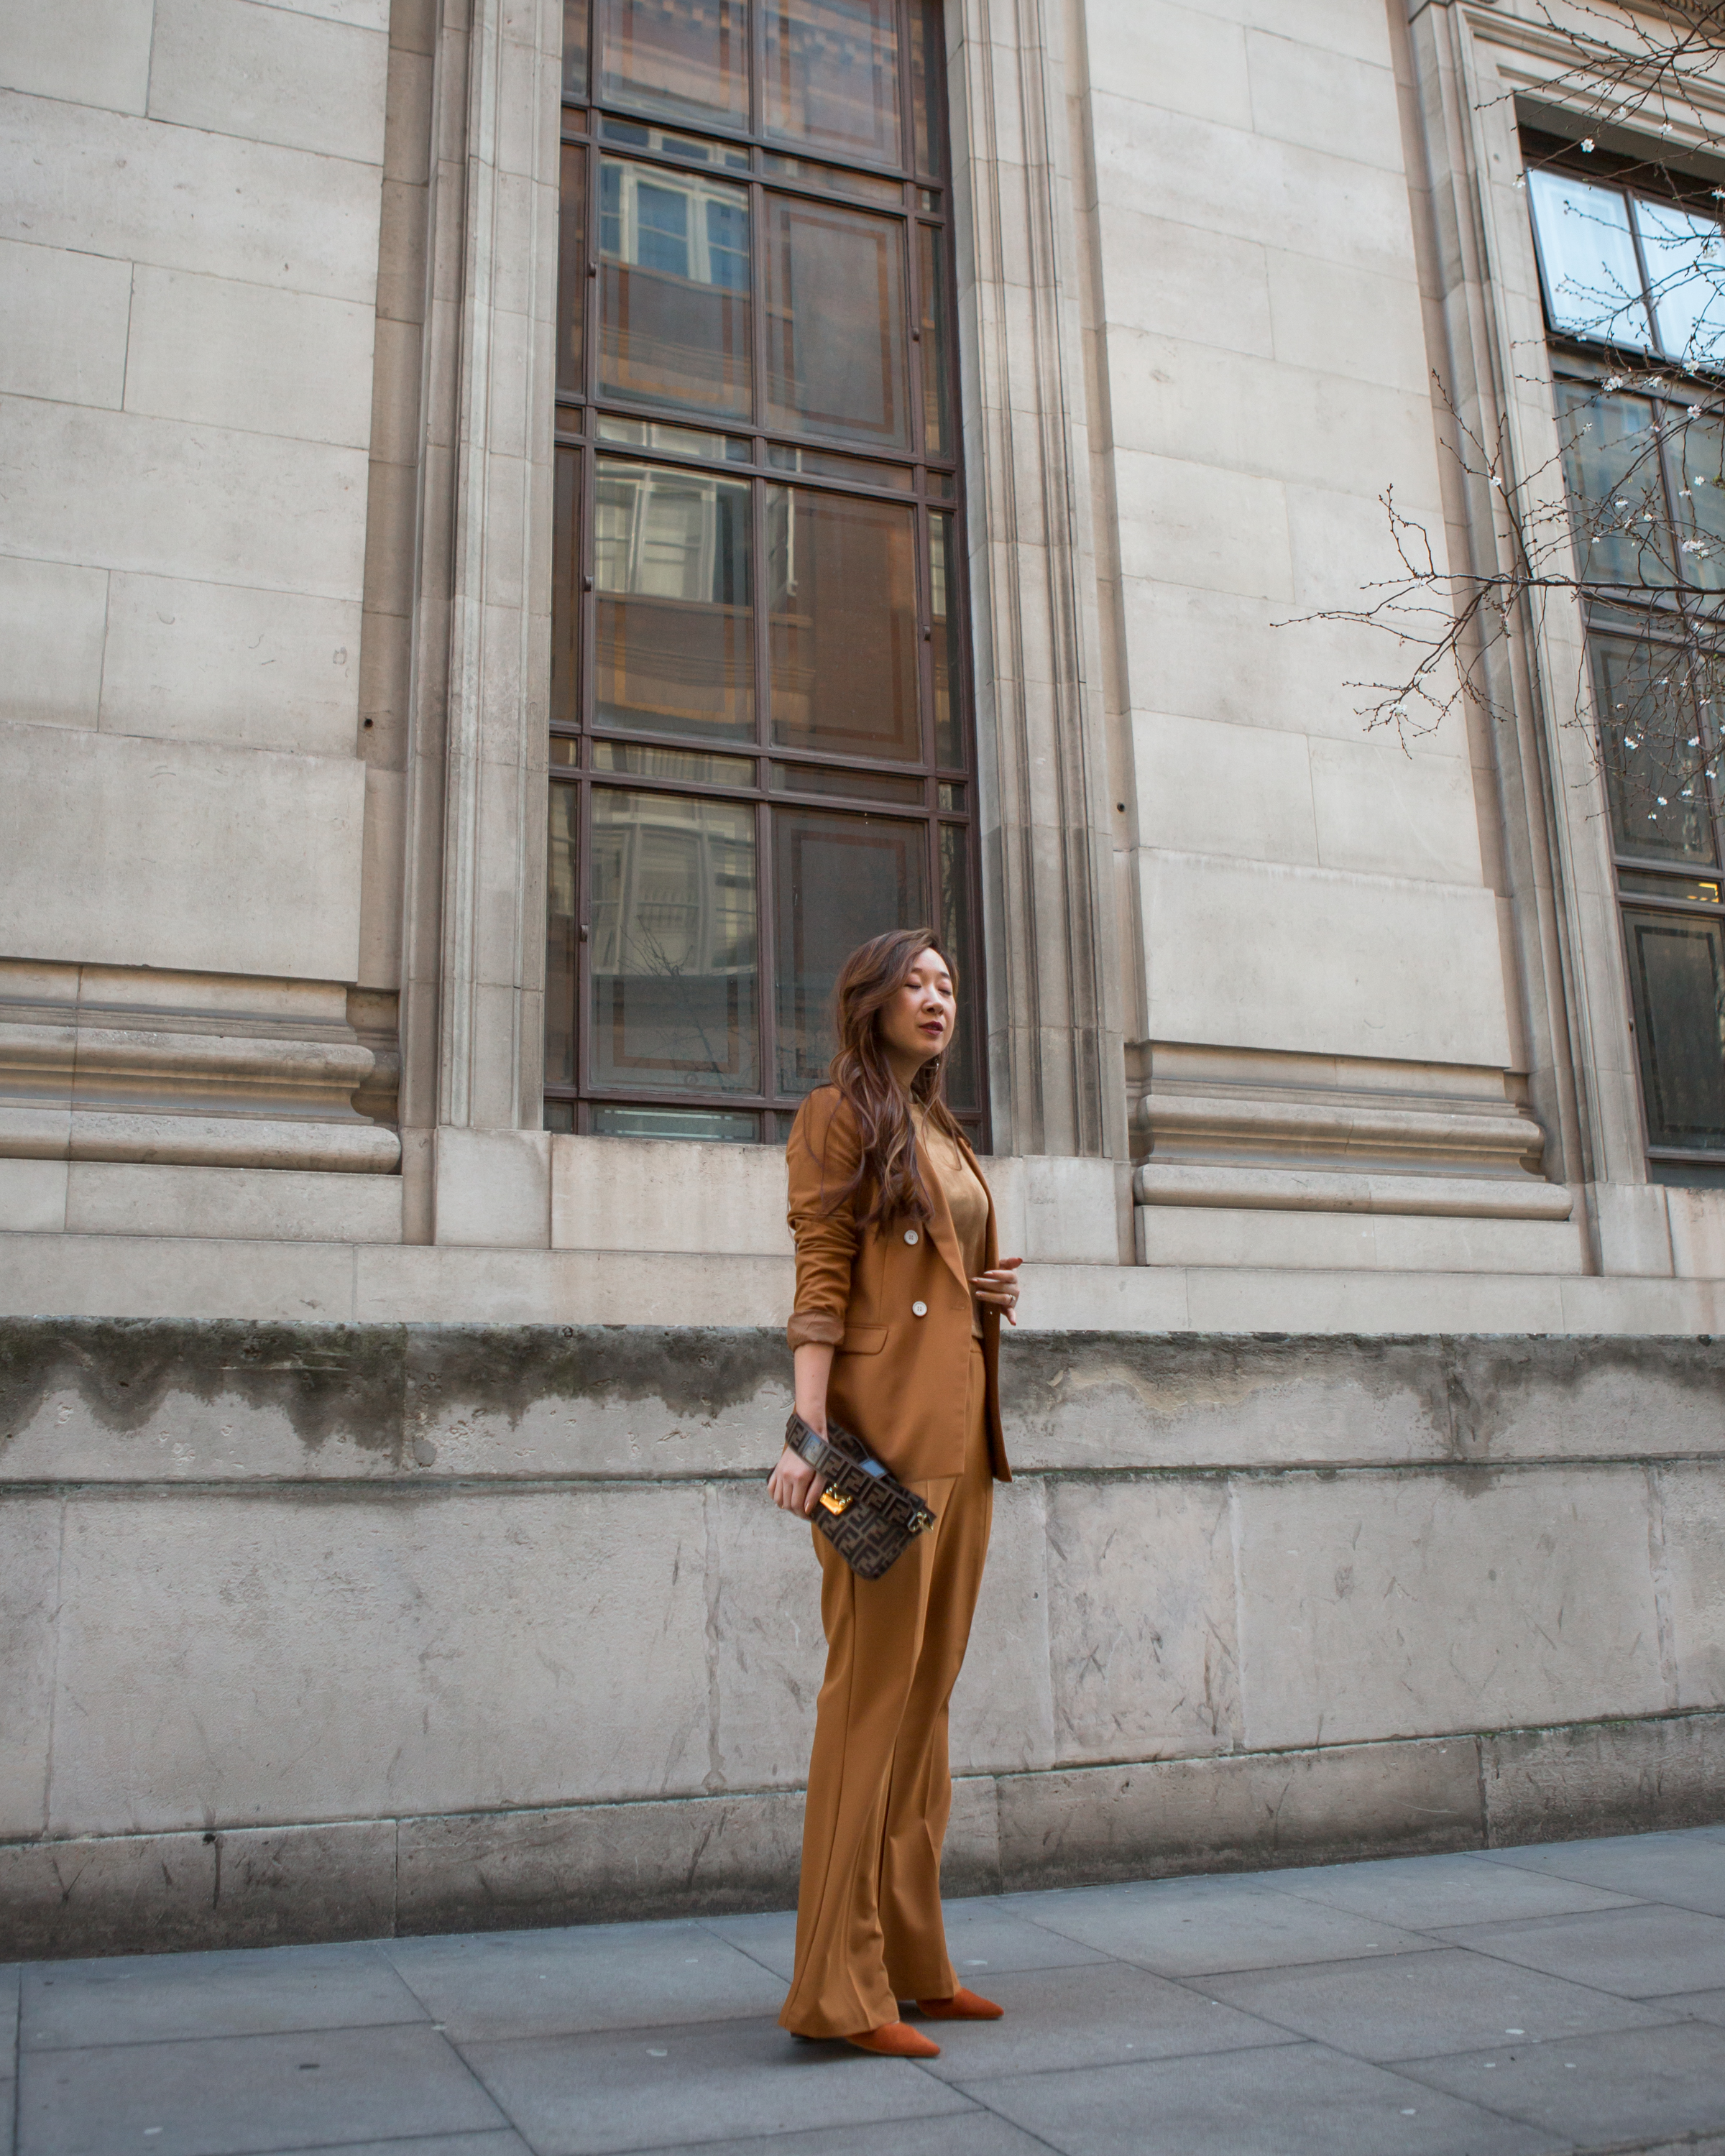 For the first presentation, I wore a head-to-toe camel-toned outfit, featuring a suit and a velvet top, as well as my burn orange suede heels from Jacquemus. Photos by  @lucy_aliceb .